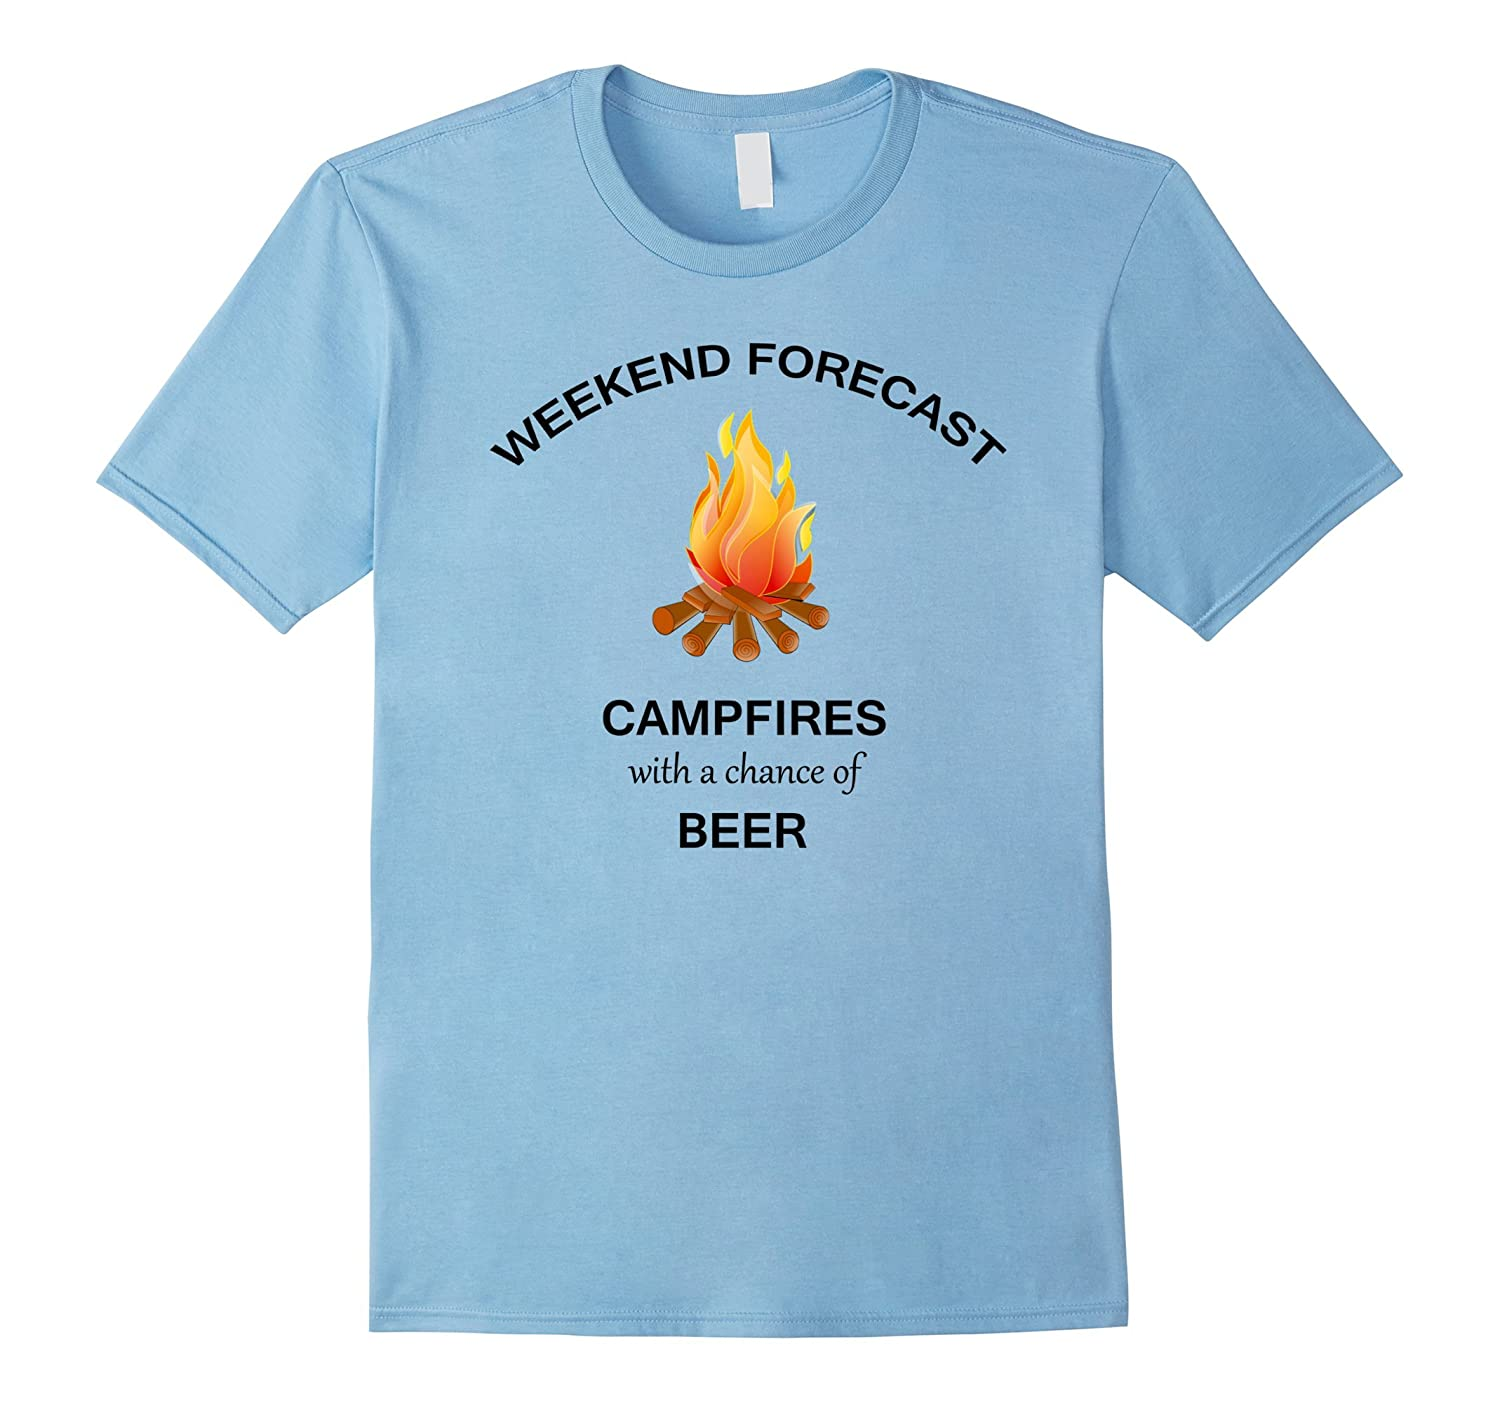 Campfires With a Chance of Beer - Camping T-Shirt-TH